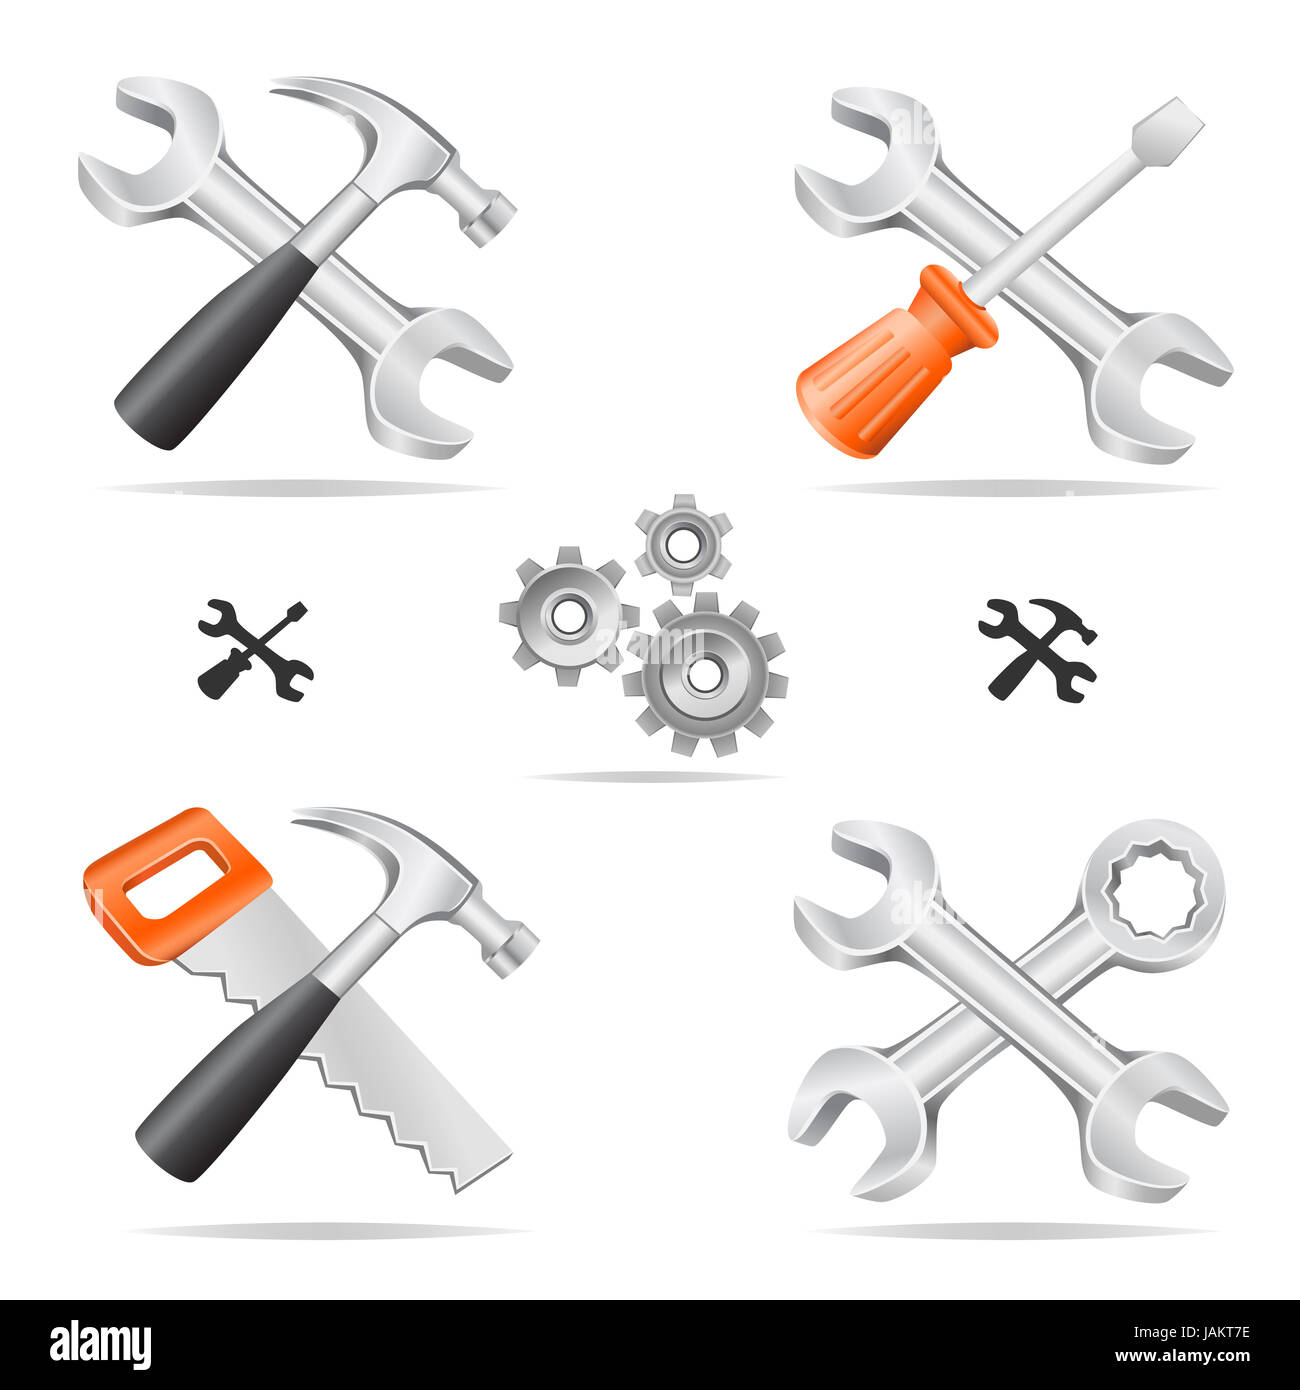 The tools icon set cross with each other isolated on a white background Stock Photo